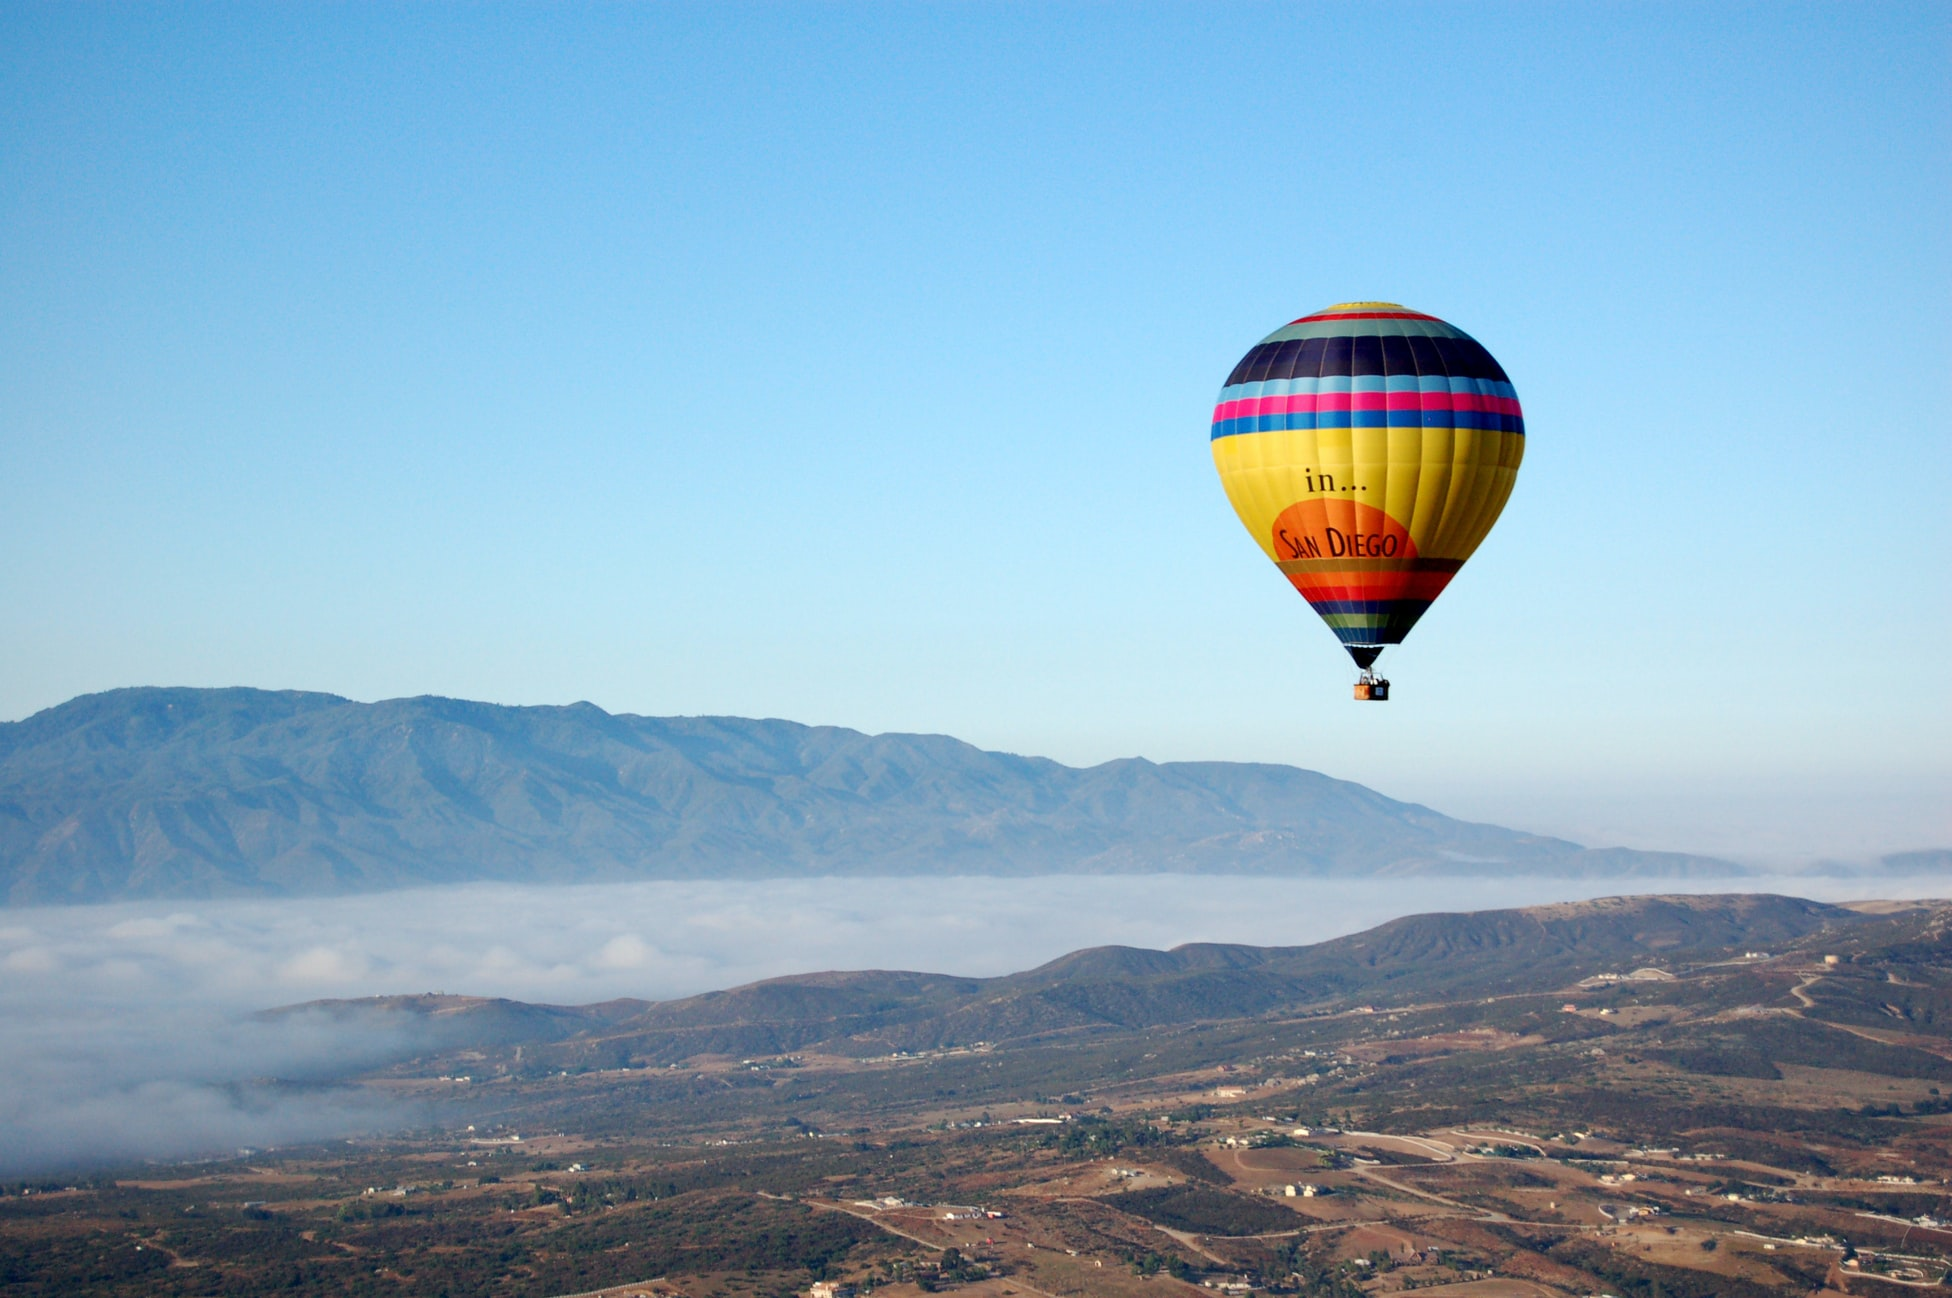 hot air balloon in the sky over Temecula, CA